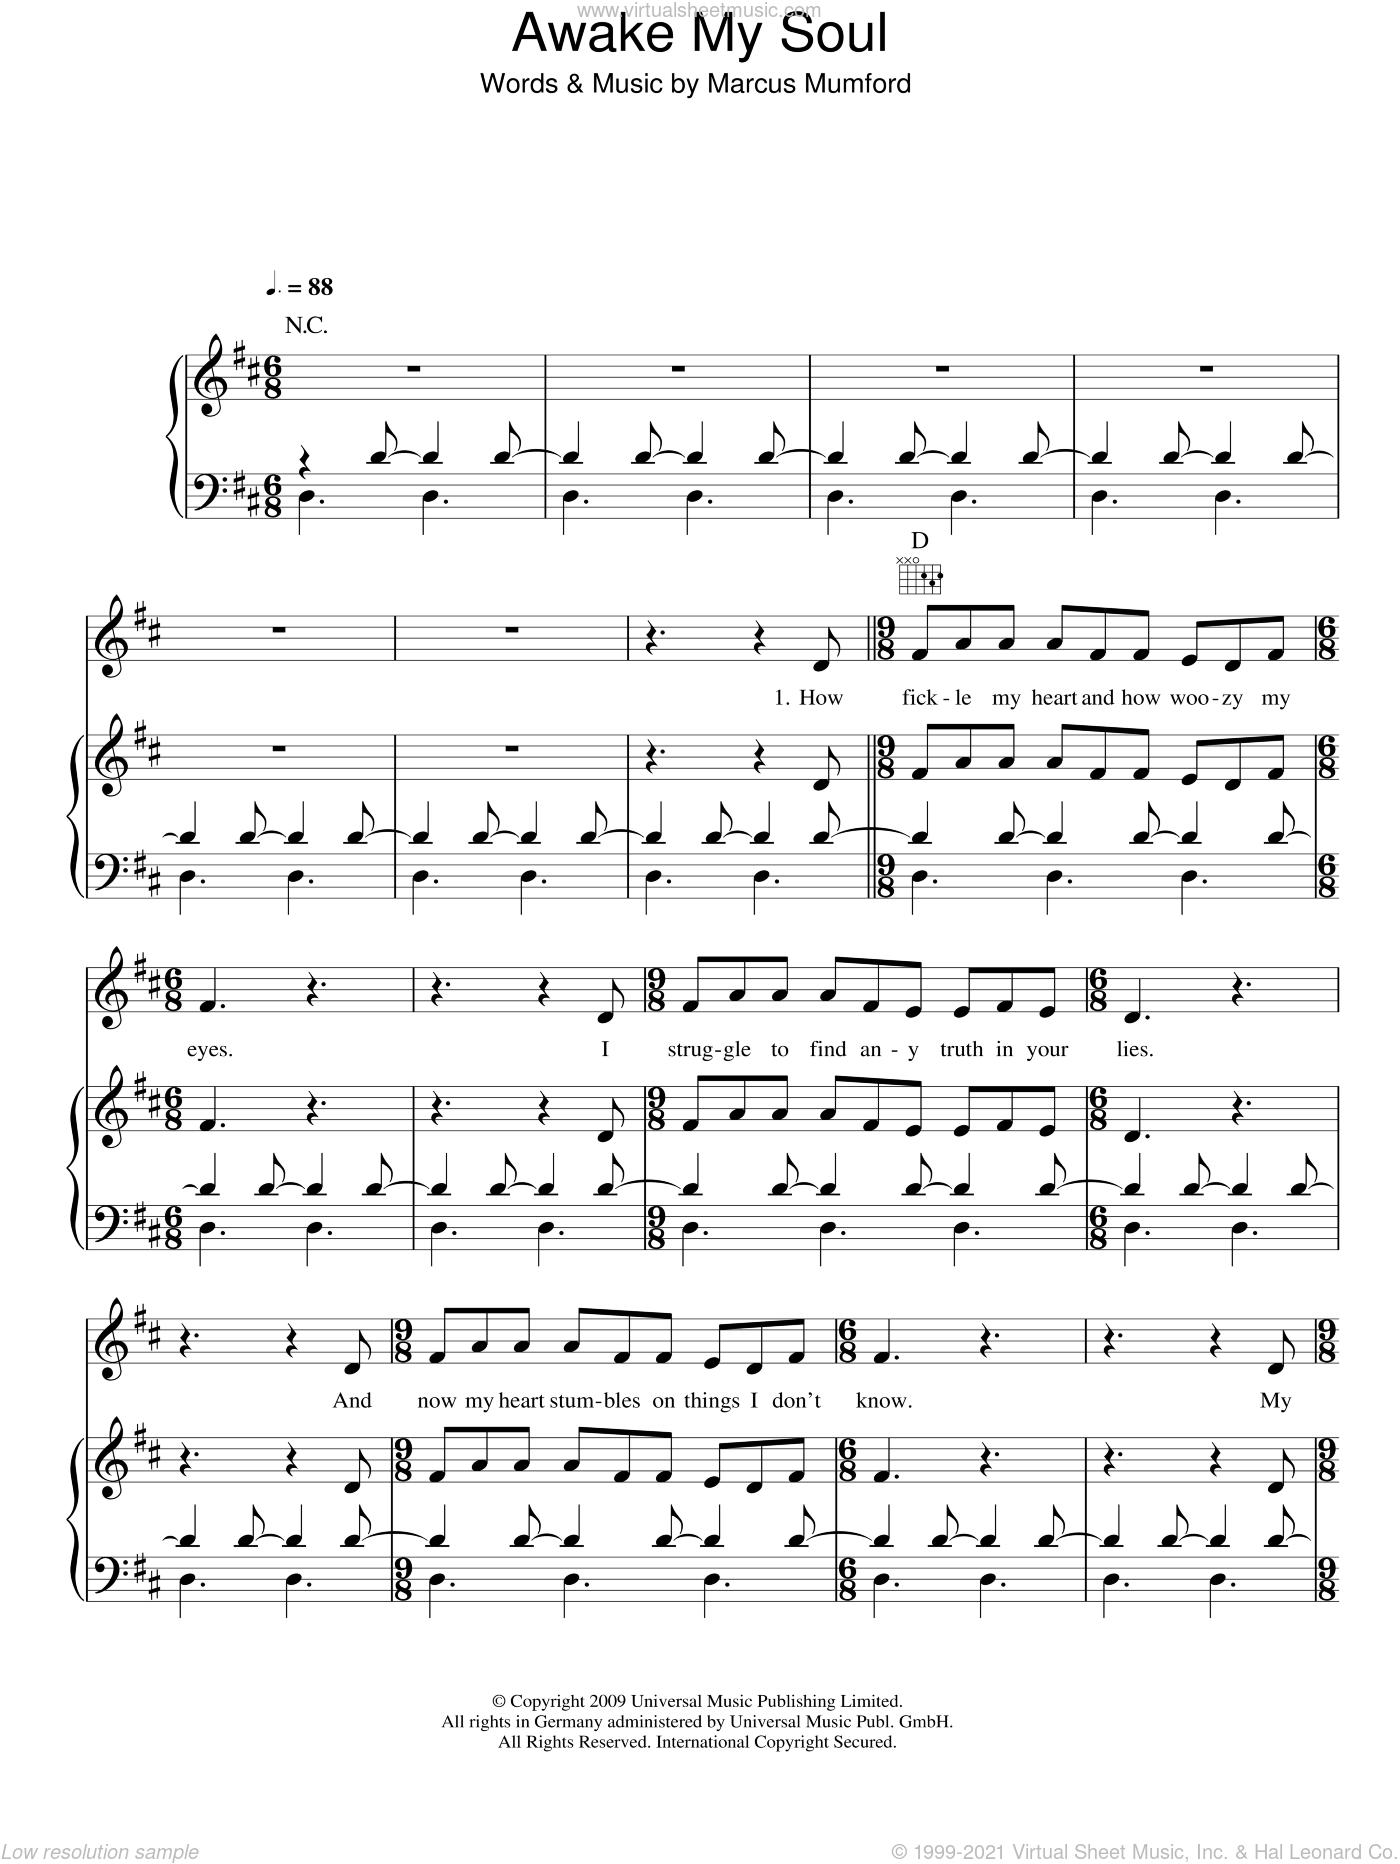 Awake My Soul sheet music for voice, piano or guitar by Marcus Mumford and Mumford & Sons. Score Image Preview.